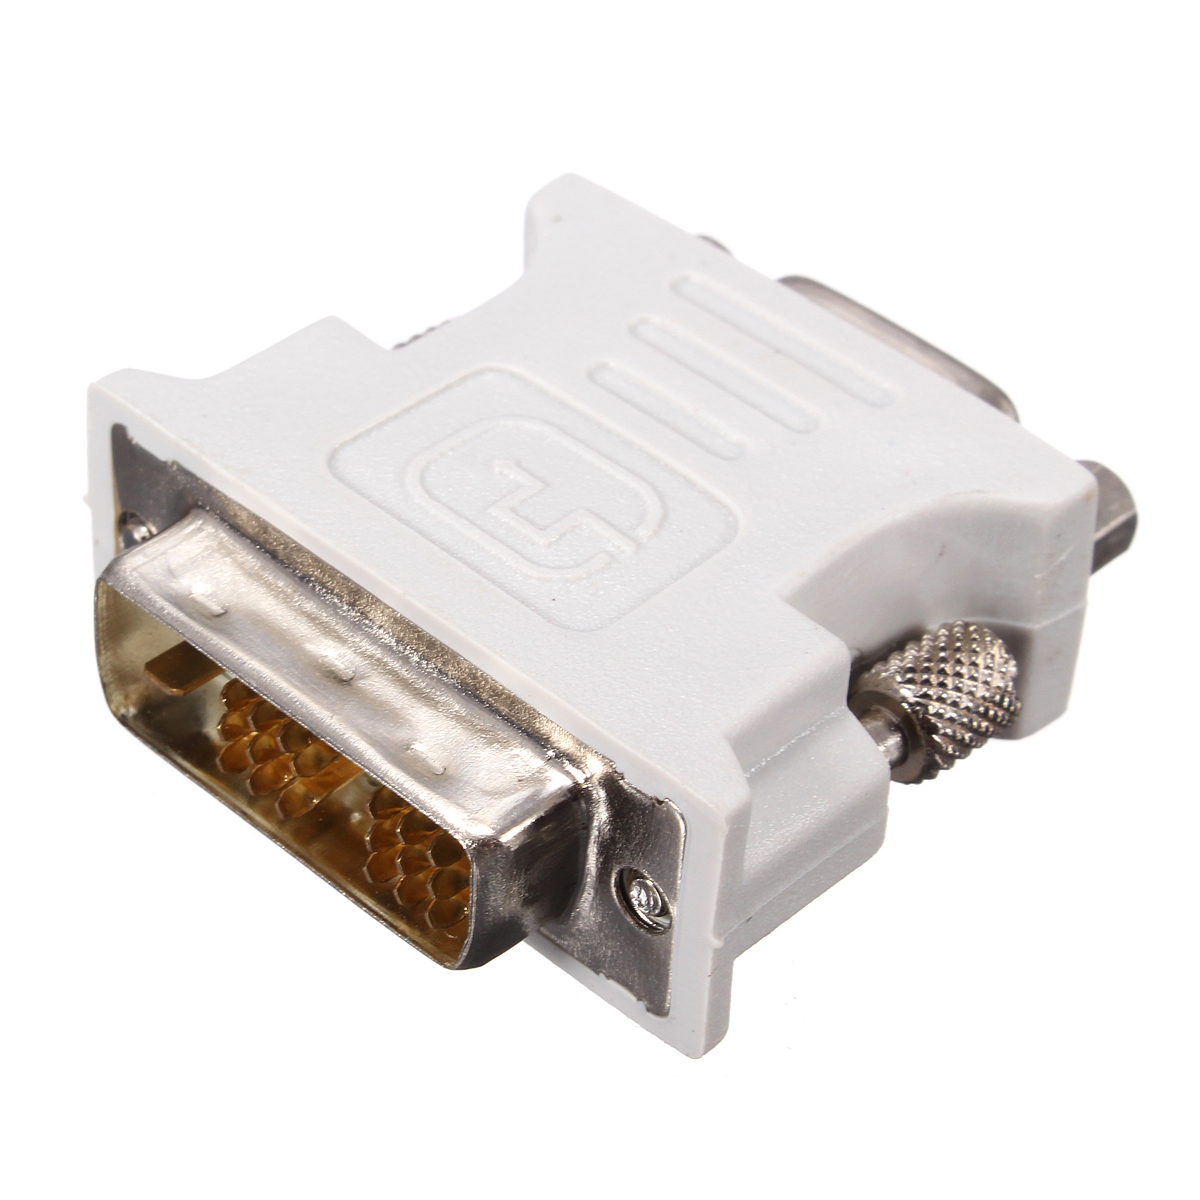 24 1 Pin Dvi D Male Adapter To 15 Pin Vga Female Video Converter Lots Wholesale